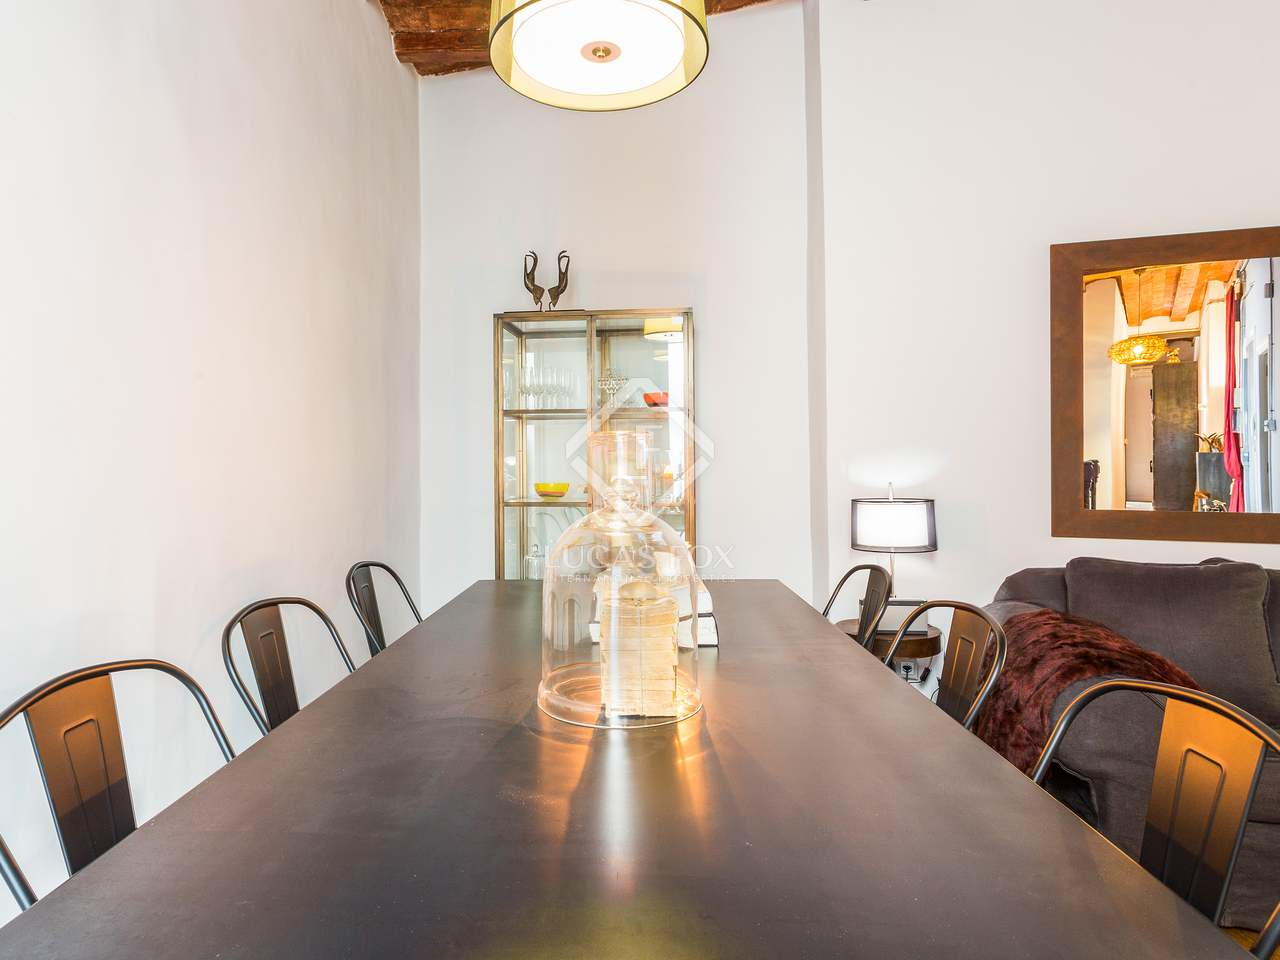 96 m apartment for sale in the gothic area barcelona for 3 renovated apt with spacious living room 10 pax